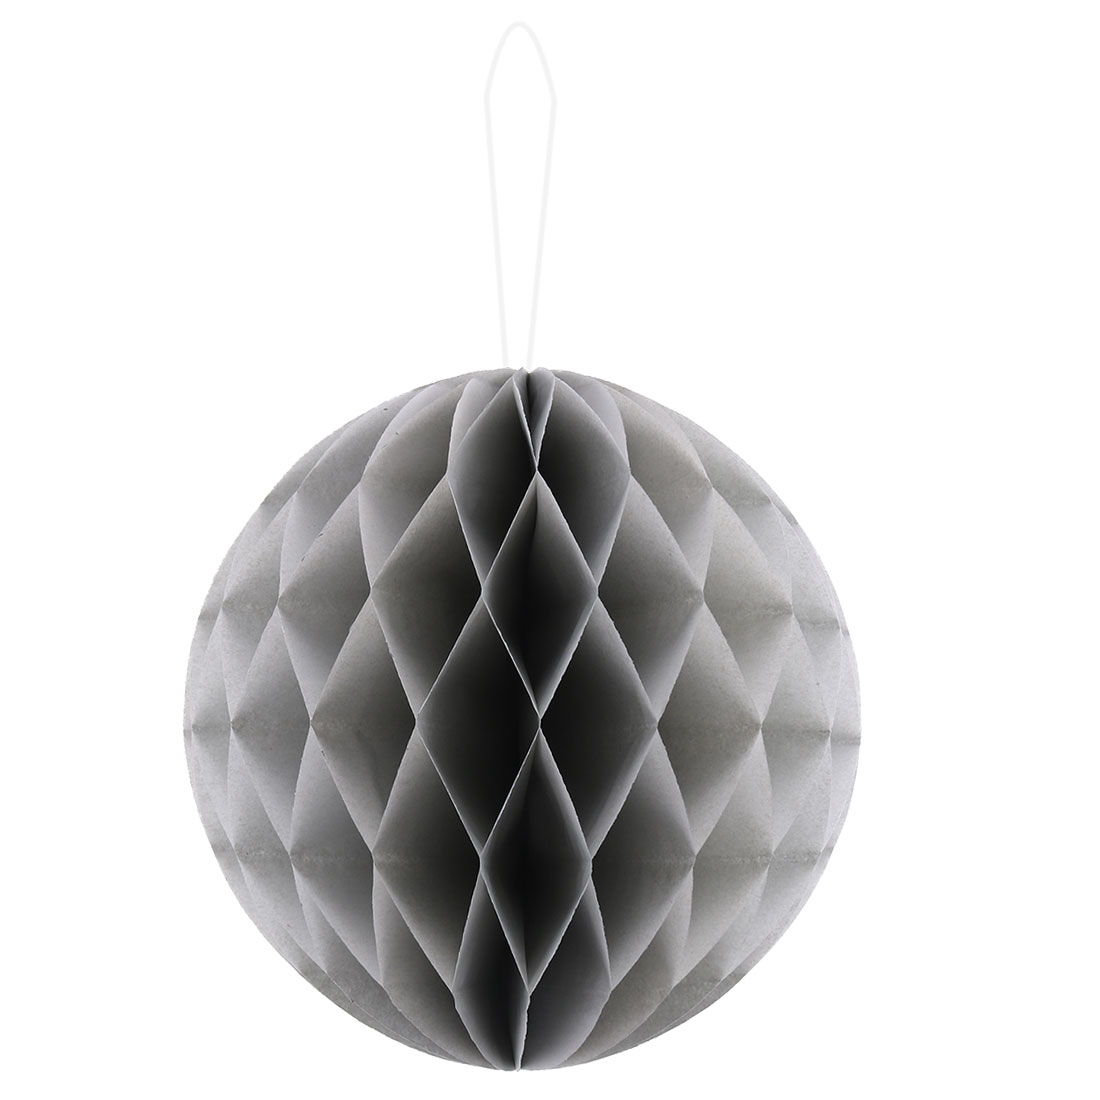 Paper Foldable DIY String Hanging Lantern Lamp Decor Honeycomb Ball Gray 12 Inch Dia